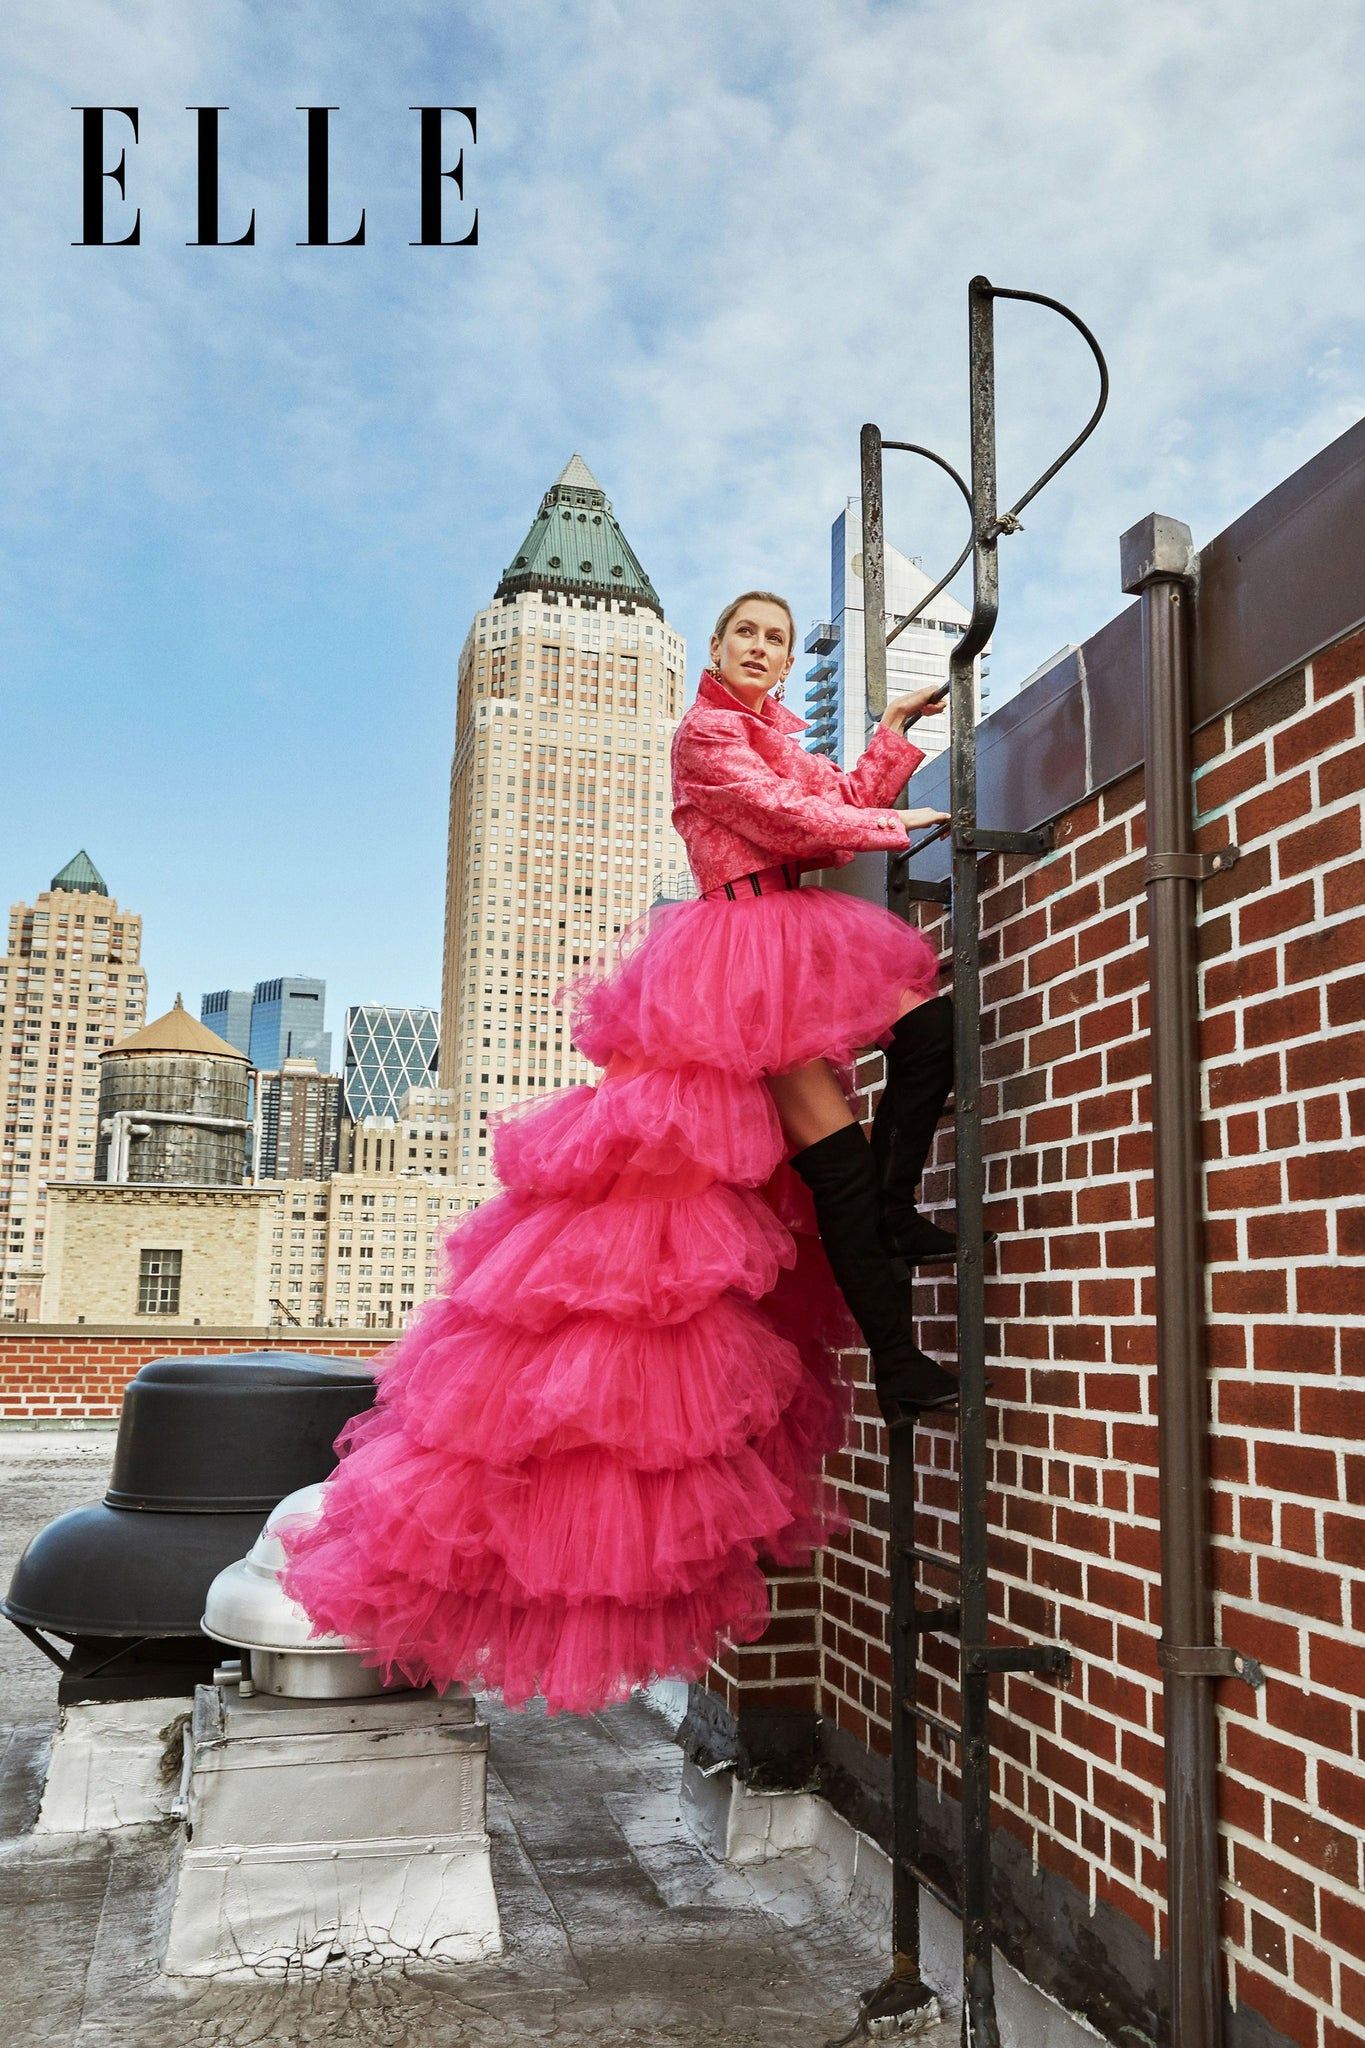 Princess Dress by Morphine Fashion featured in Elle Magazine NYC